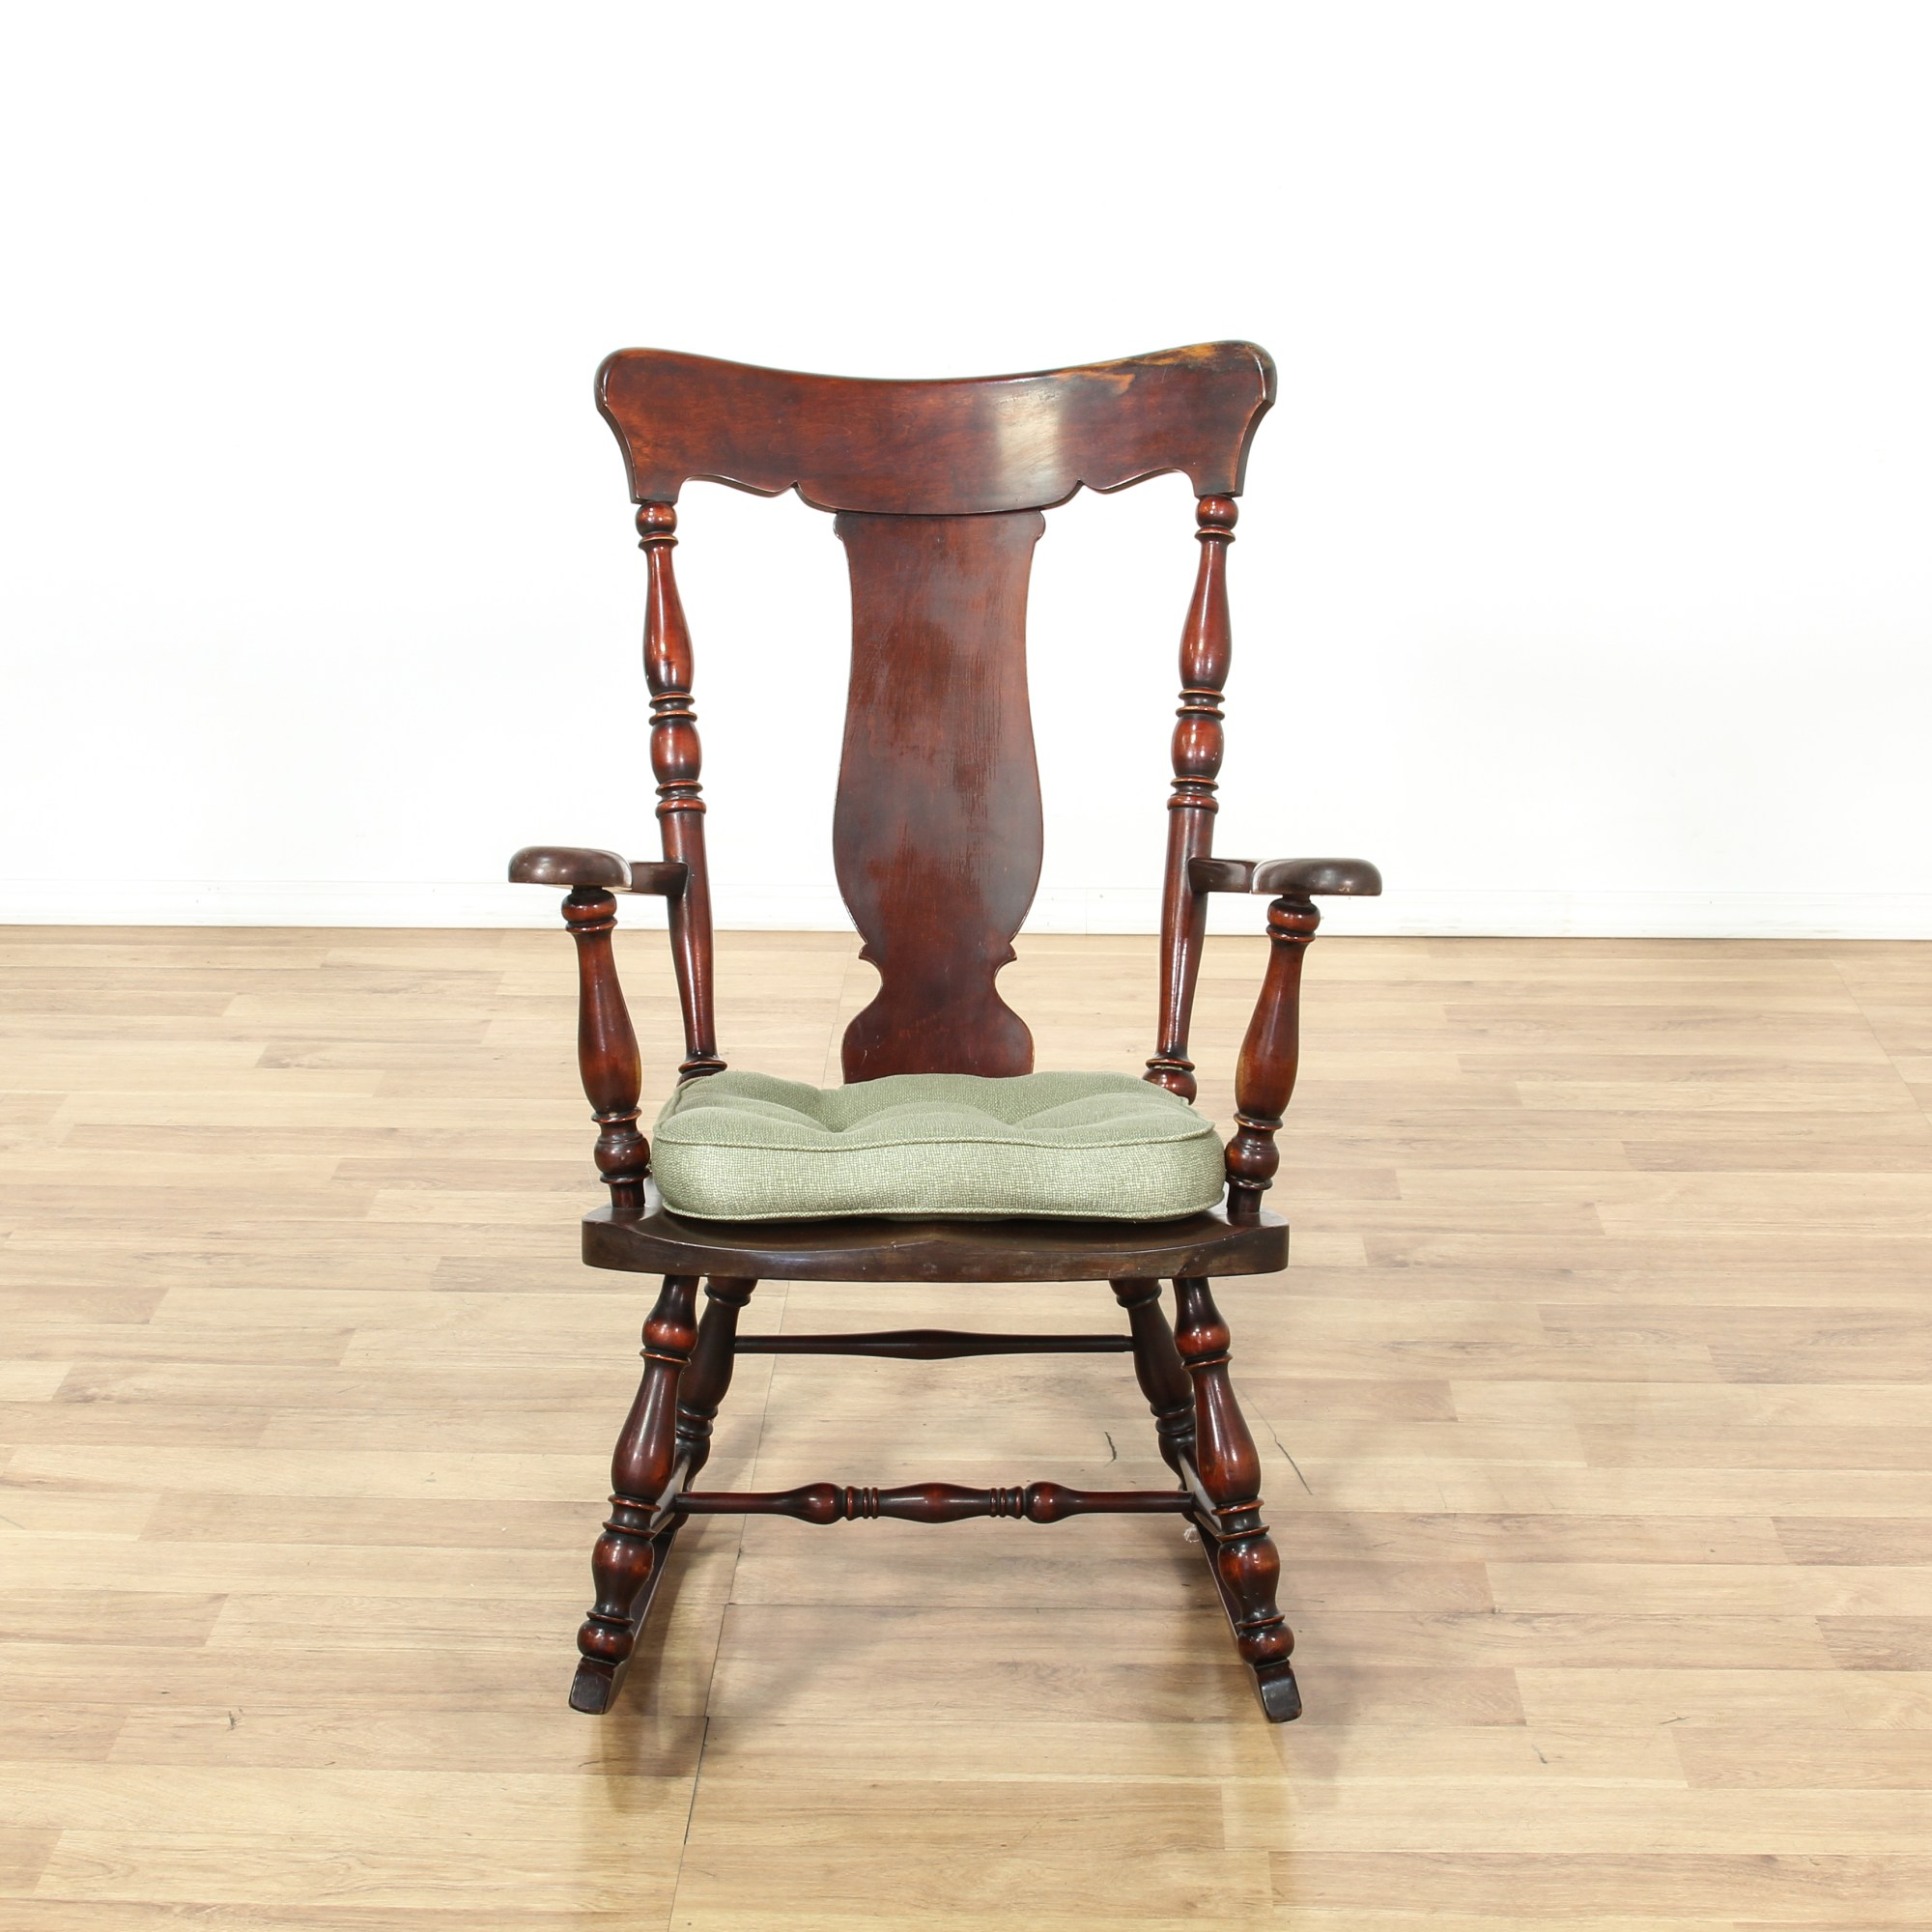 Antique Rocking Chair Antique Early American Splat Back Rocking Chair Loveseat